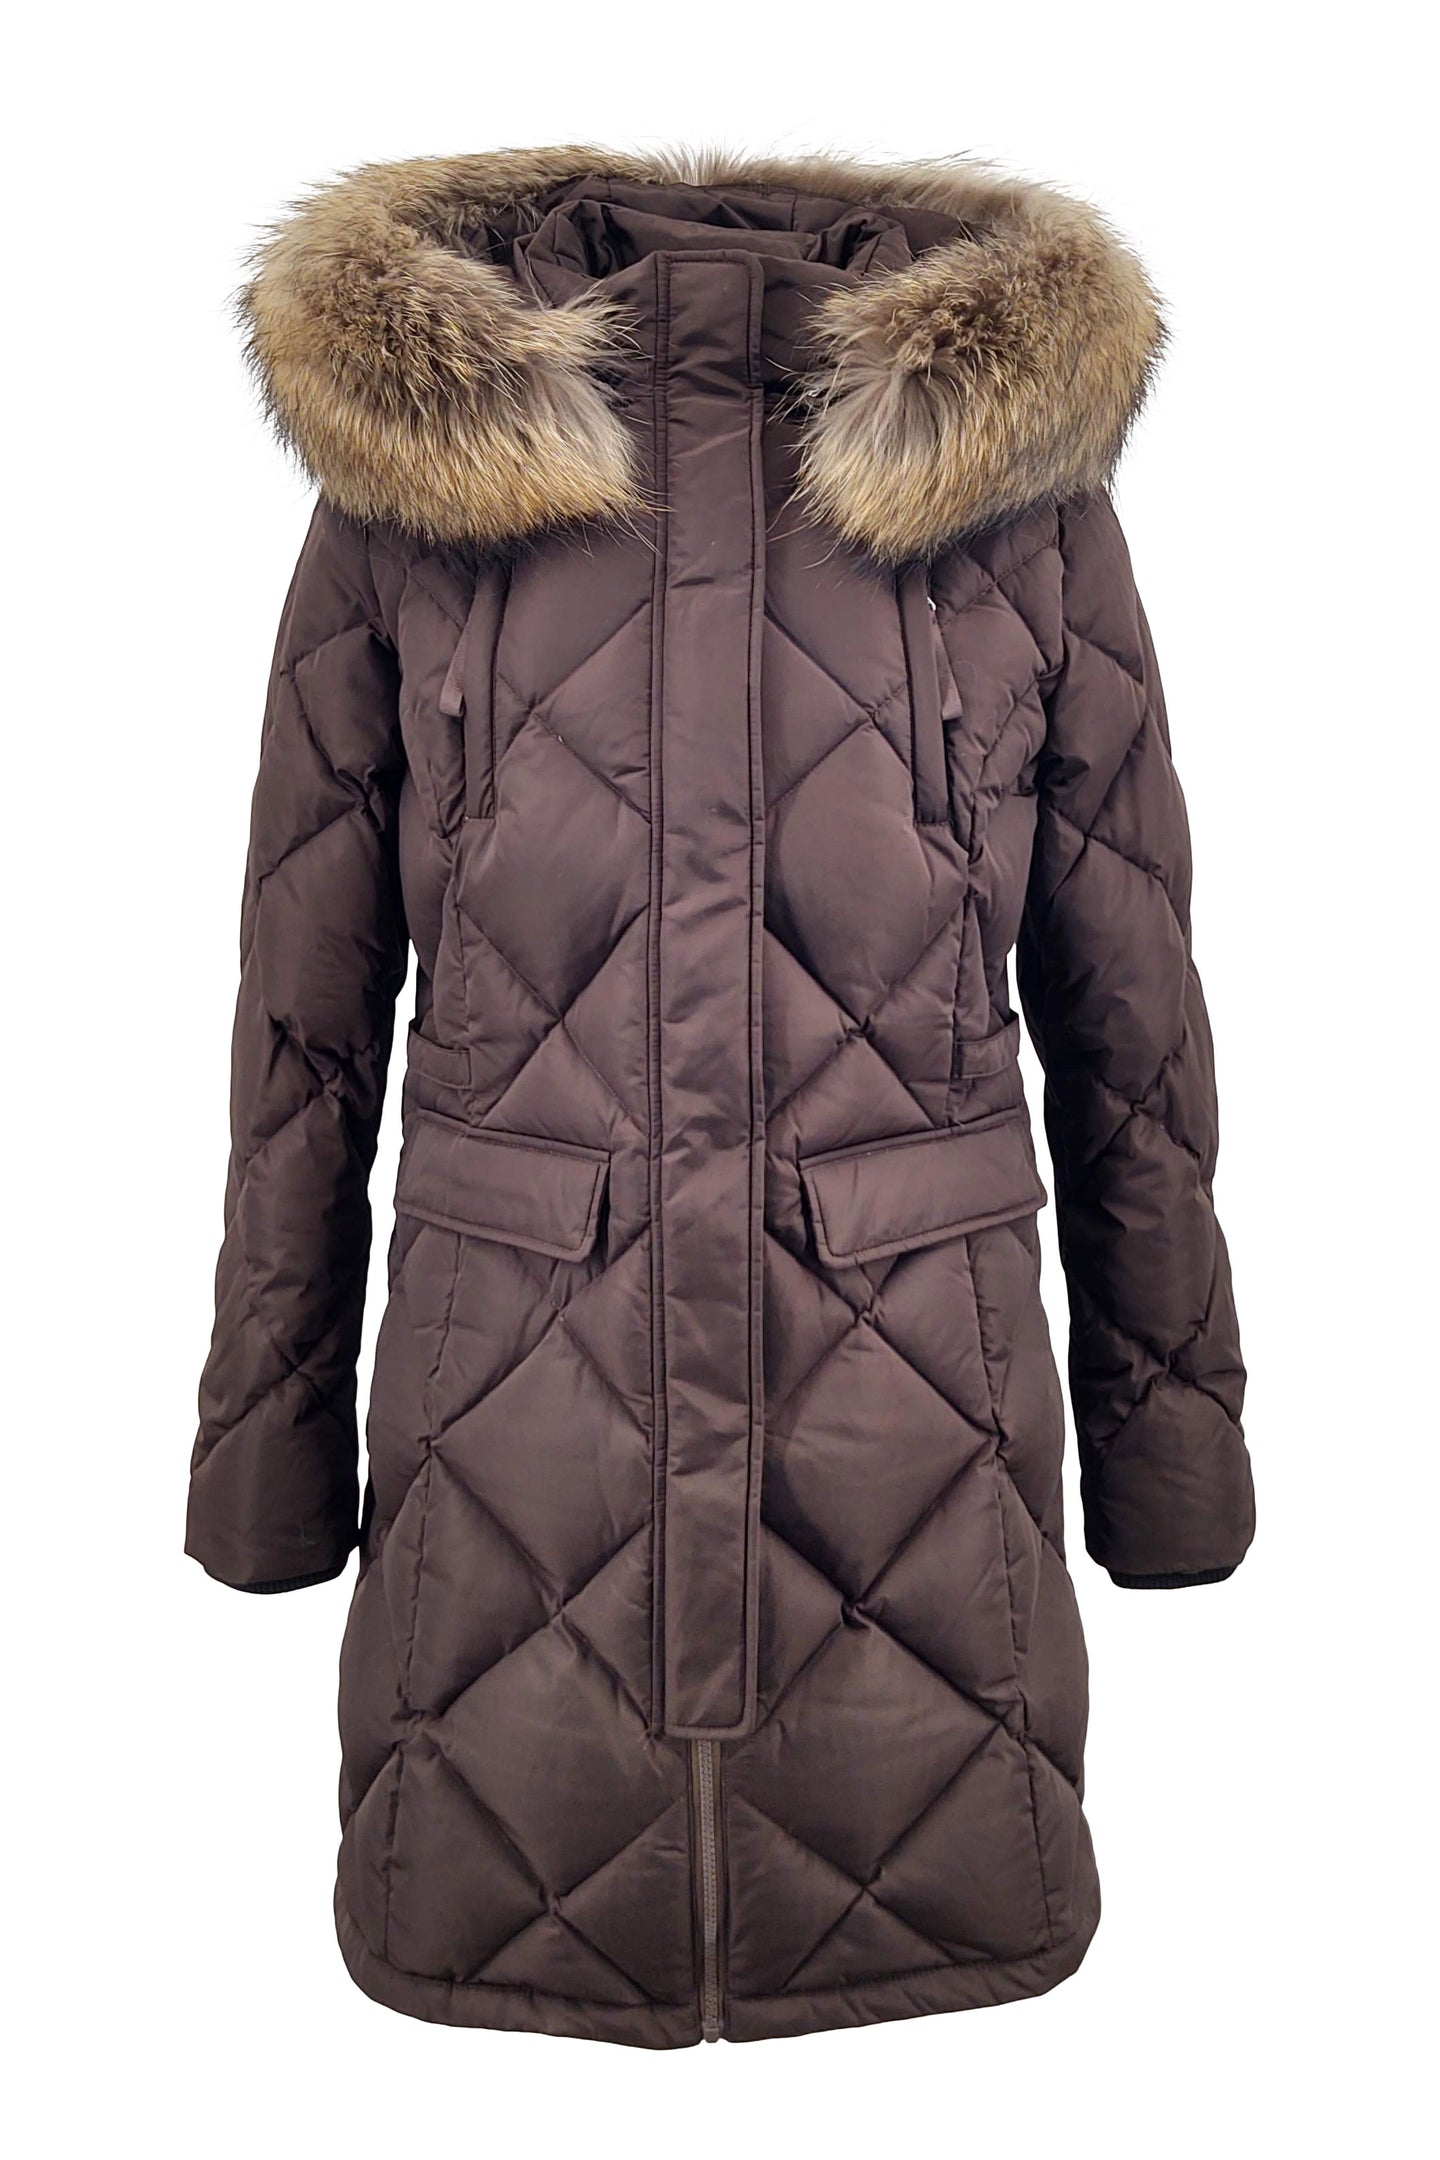 Coruna, 86 cm. - Hood  - Faux Down - Women - Dark Brown | STAMPE PELS